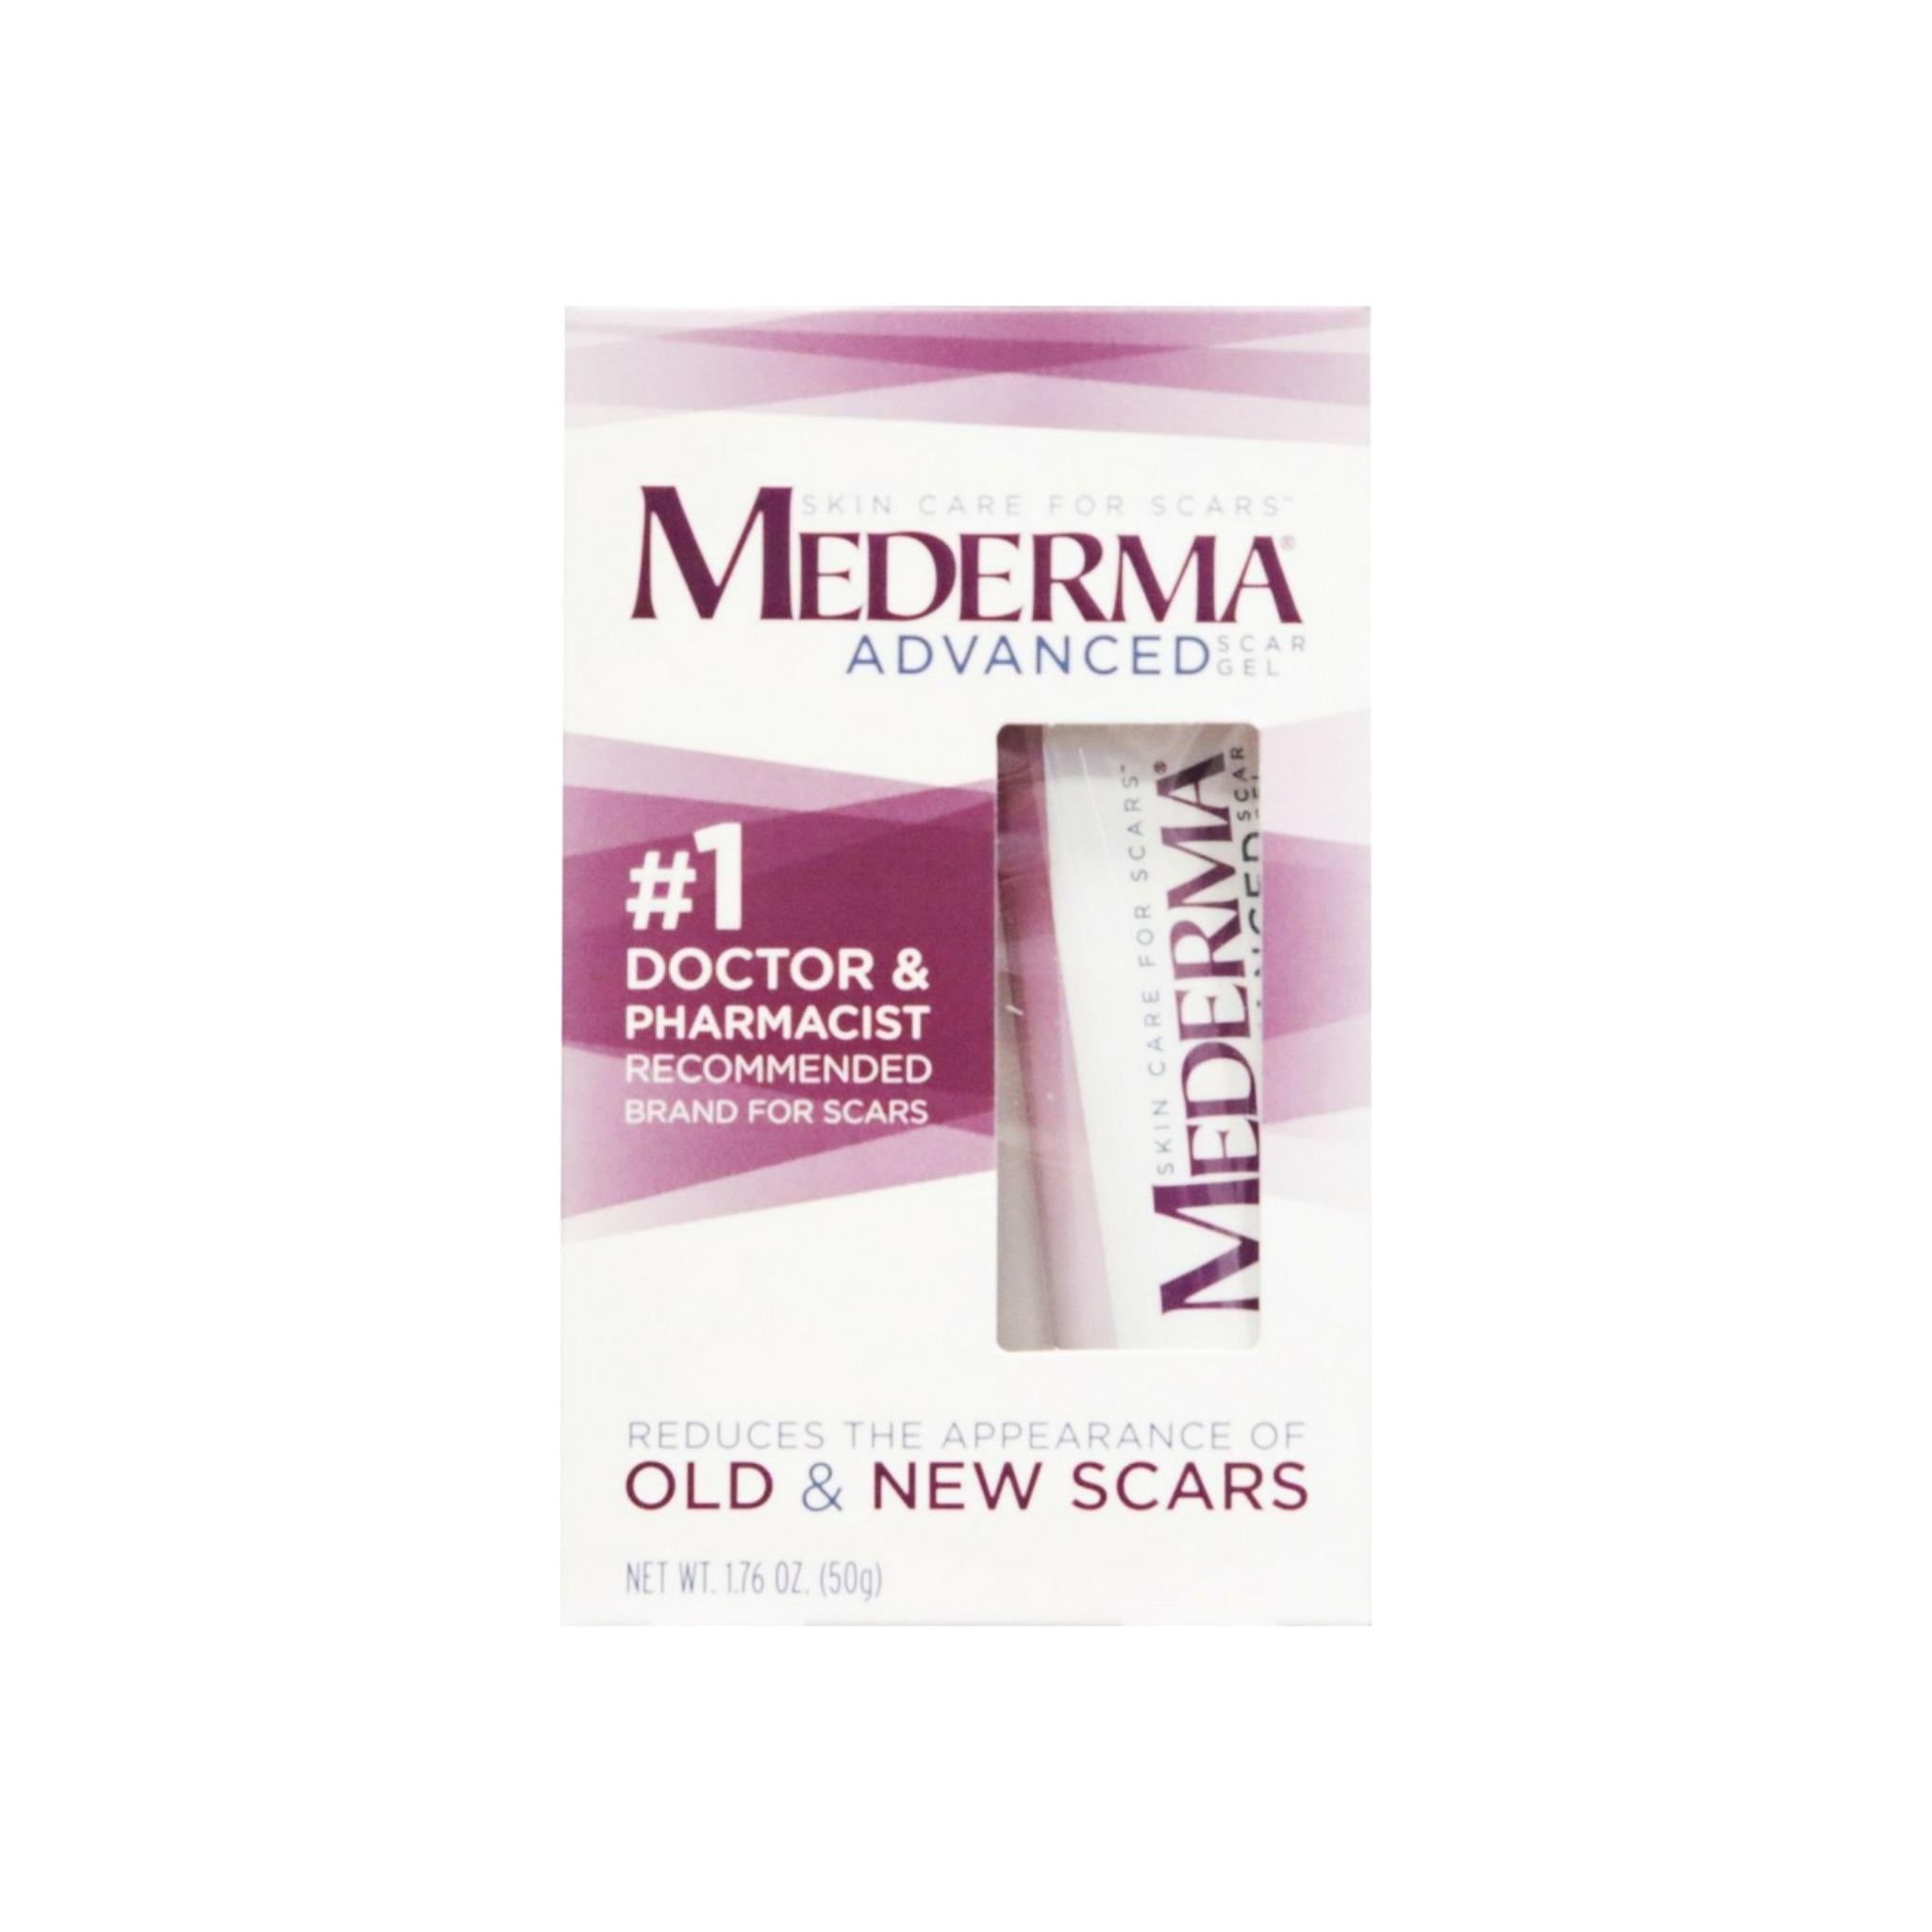 Mederma Advanced Scar Gel 50 G Pharmapacks